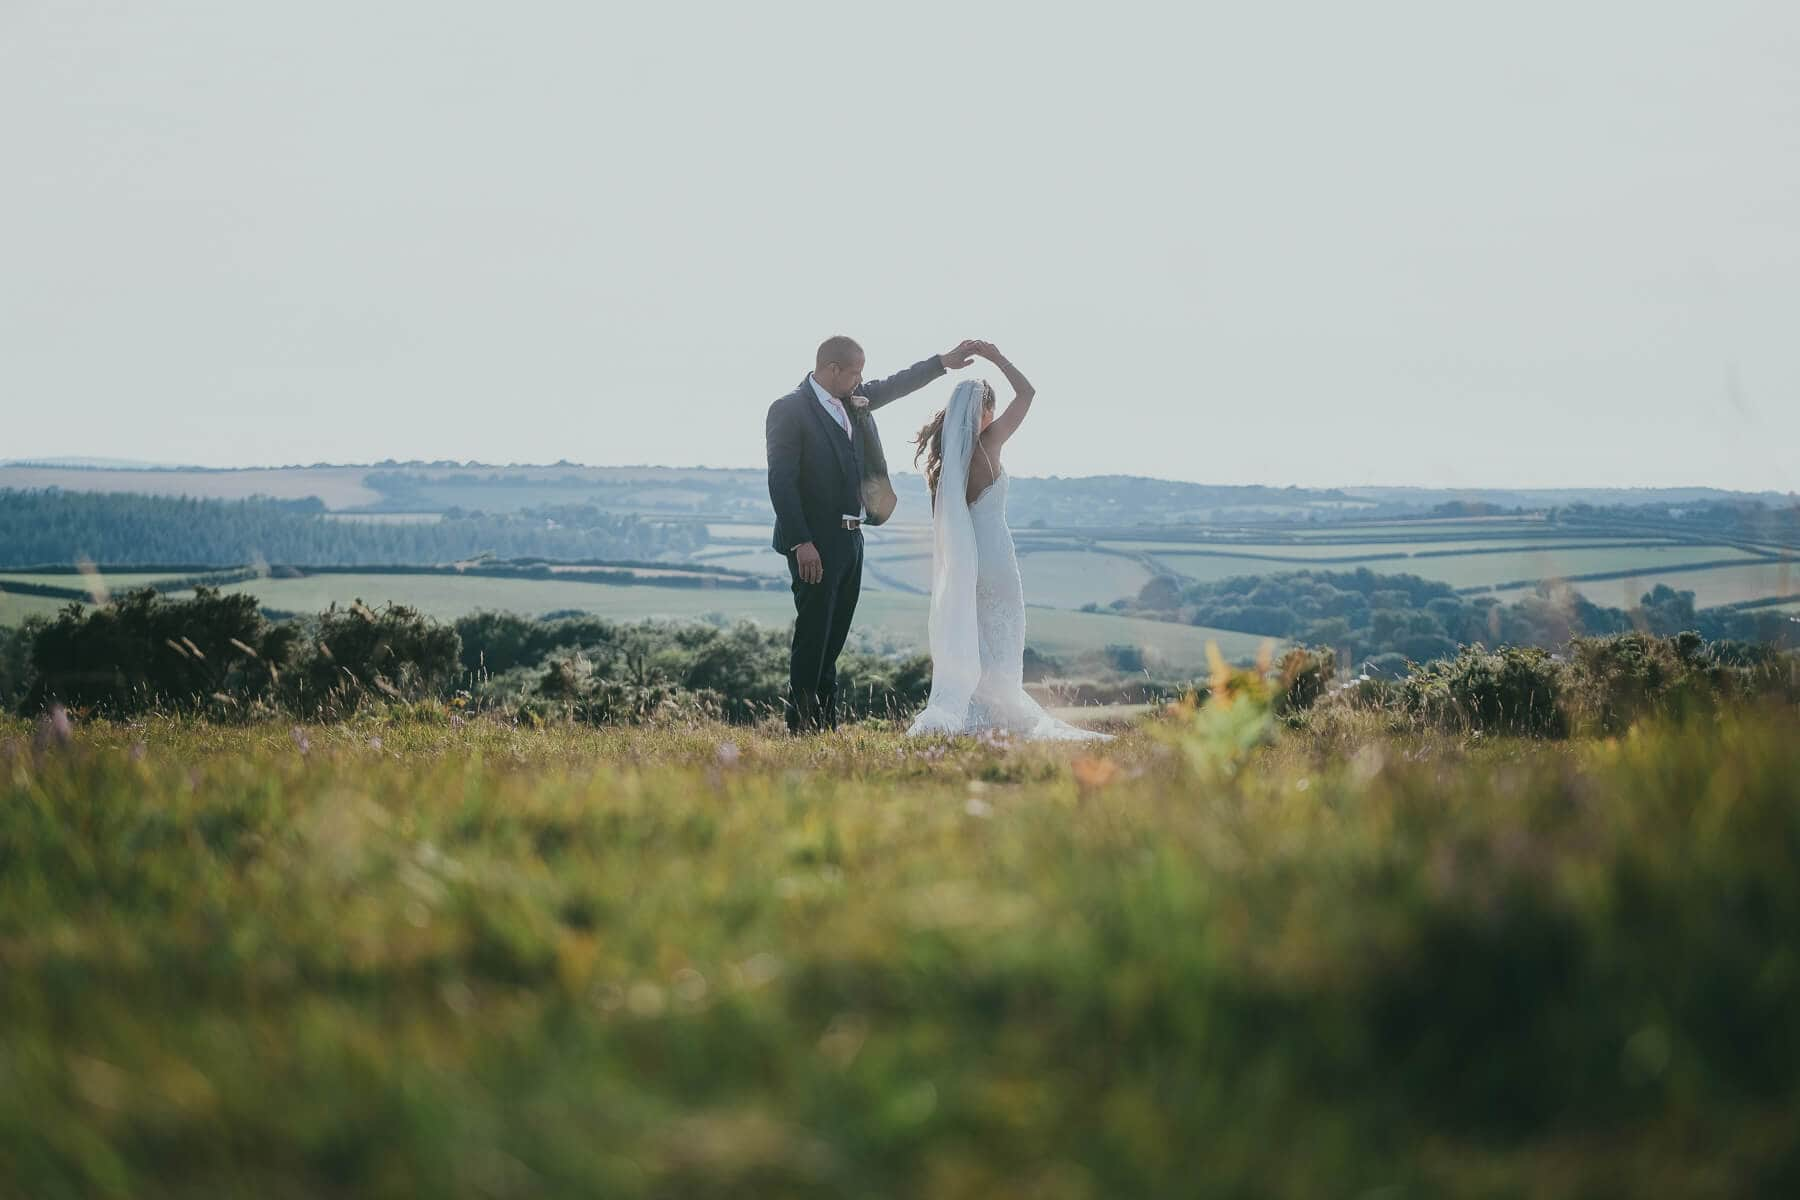 Trevenna Barns Wedding Photography | Helen & Daniel